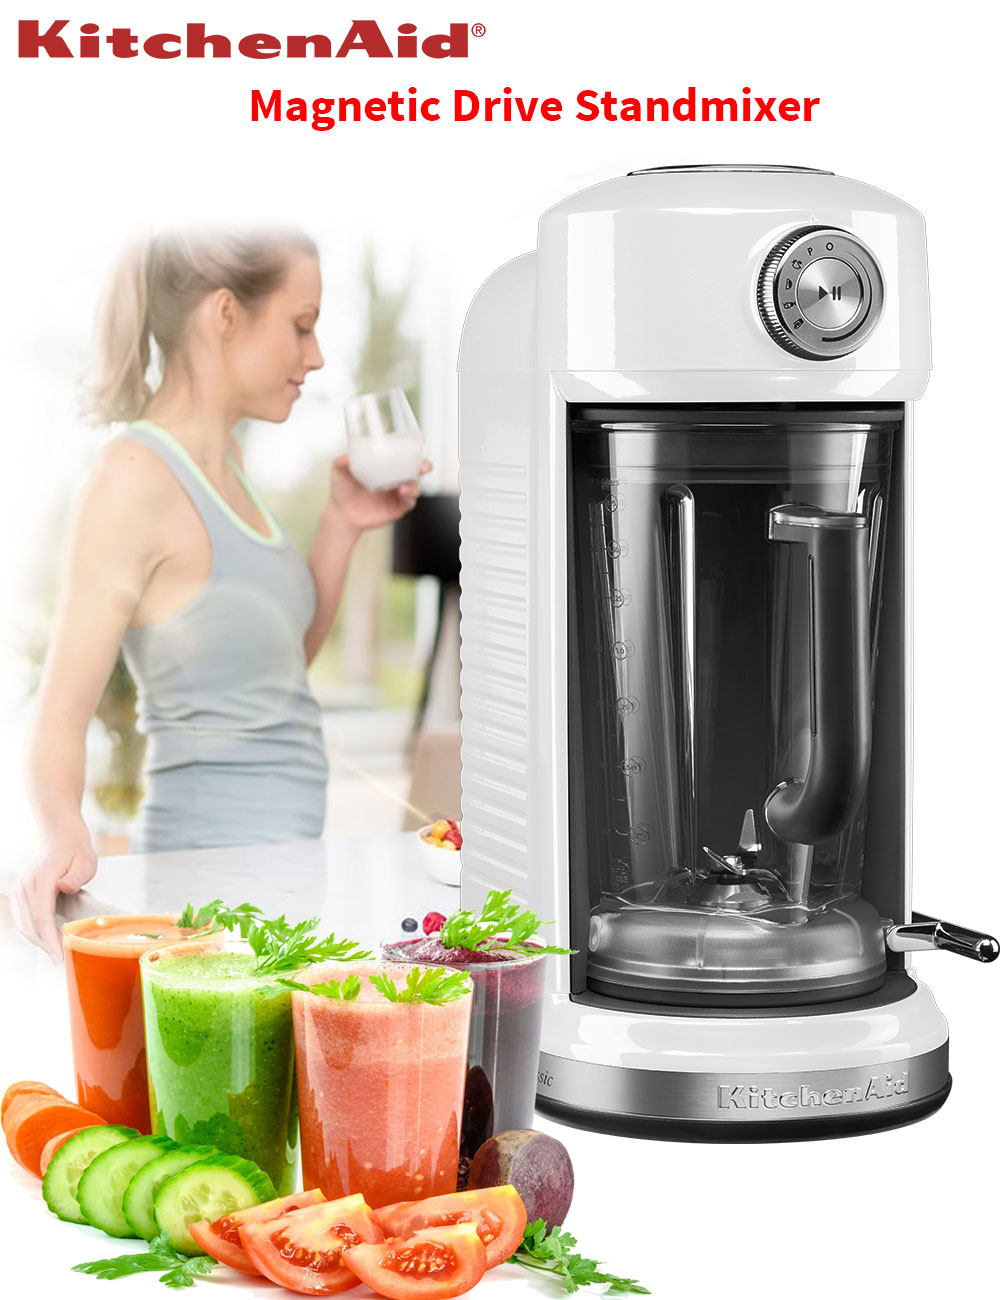 kitchenaid classic magnetic drive blender stand mixer k chenmaschine 1300 w wei ebay. Black Bedroom Furniture Sets. Home Design Ideas